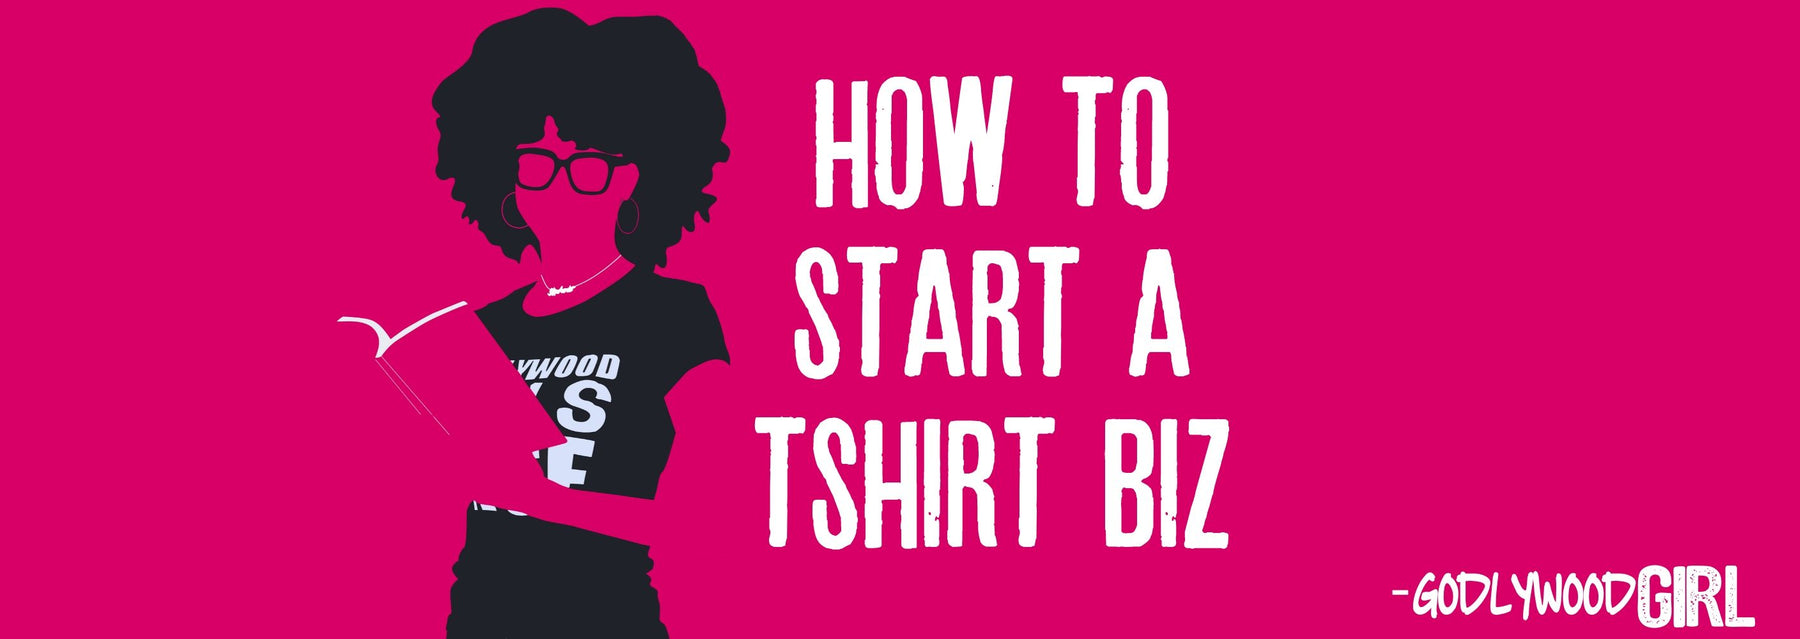 HOW TO START A T-SHIRT BUSINESS ONLINE 2019 (Christian Entrepreneur Series)